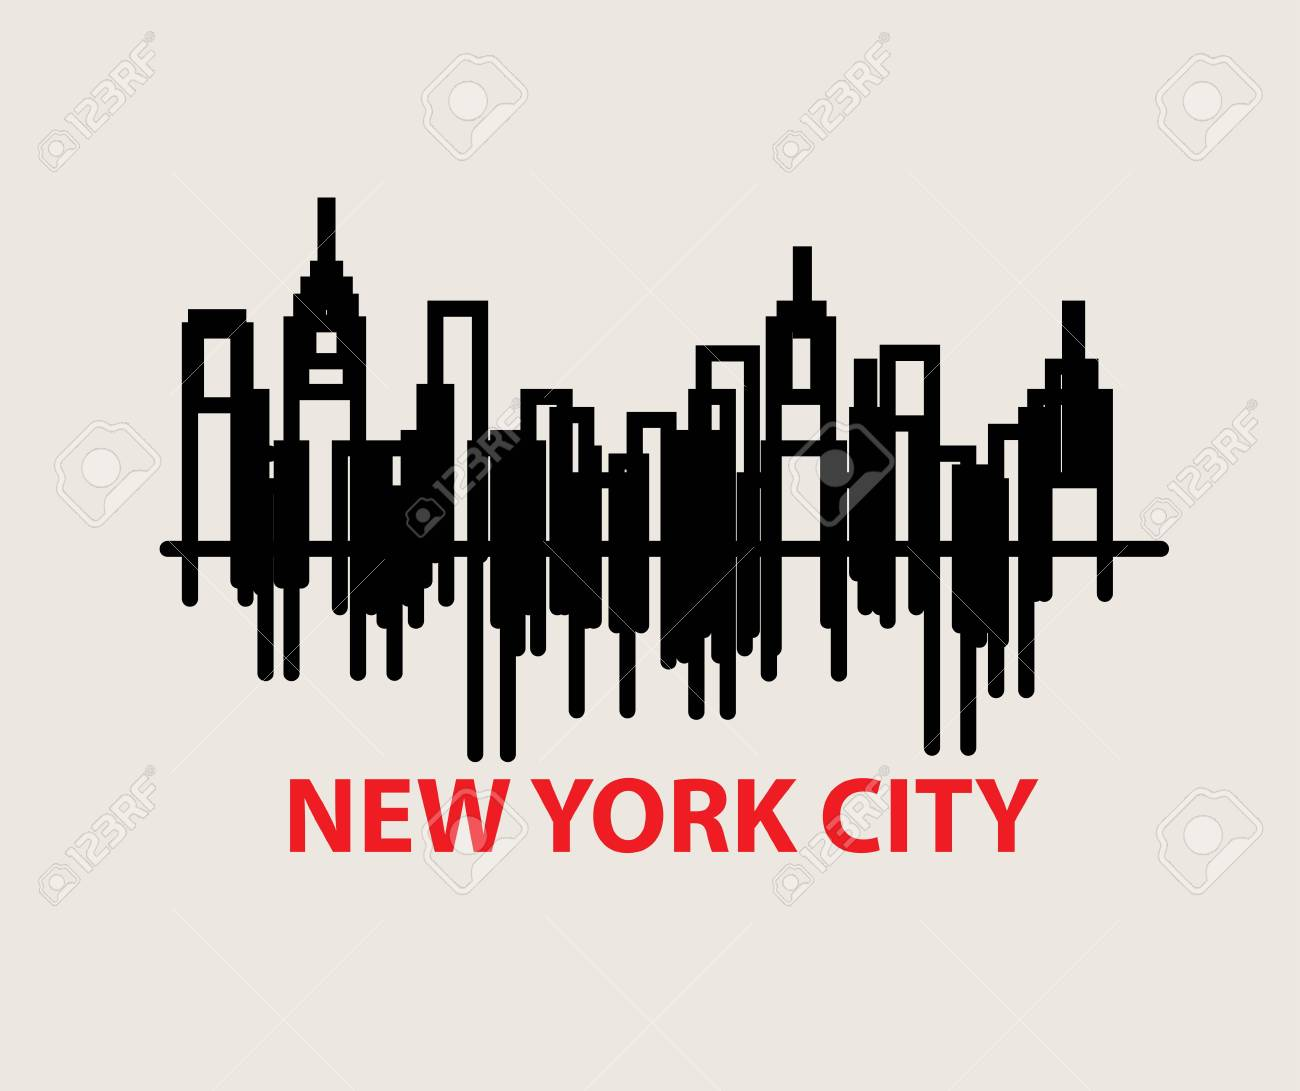 New York City Skyline Art Vector Design Royalty Free Cliparts Vectors And Stock Illustration Image 101886284